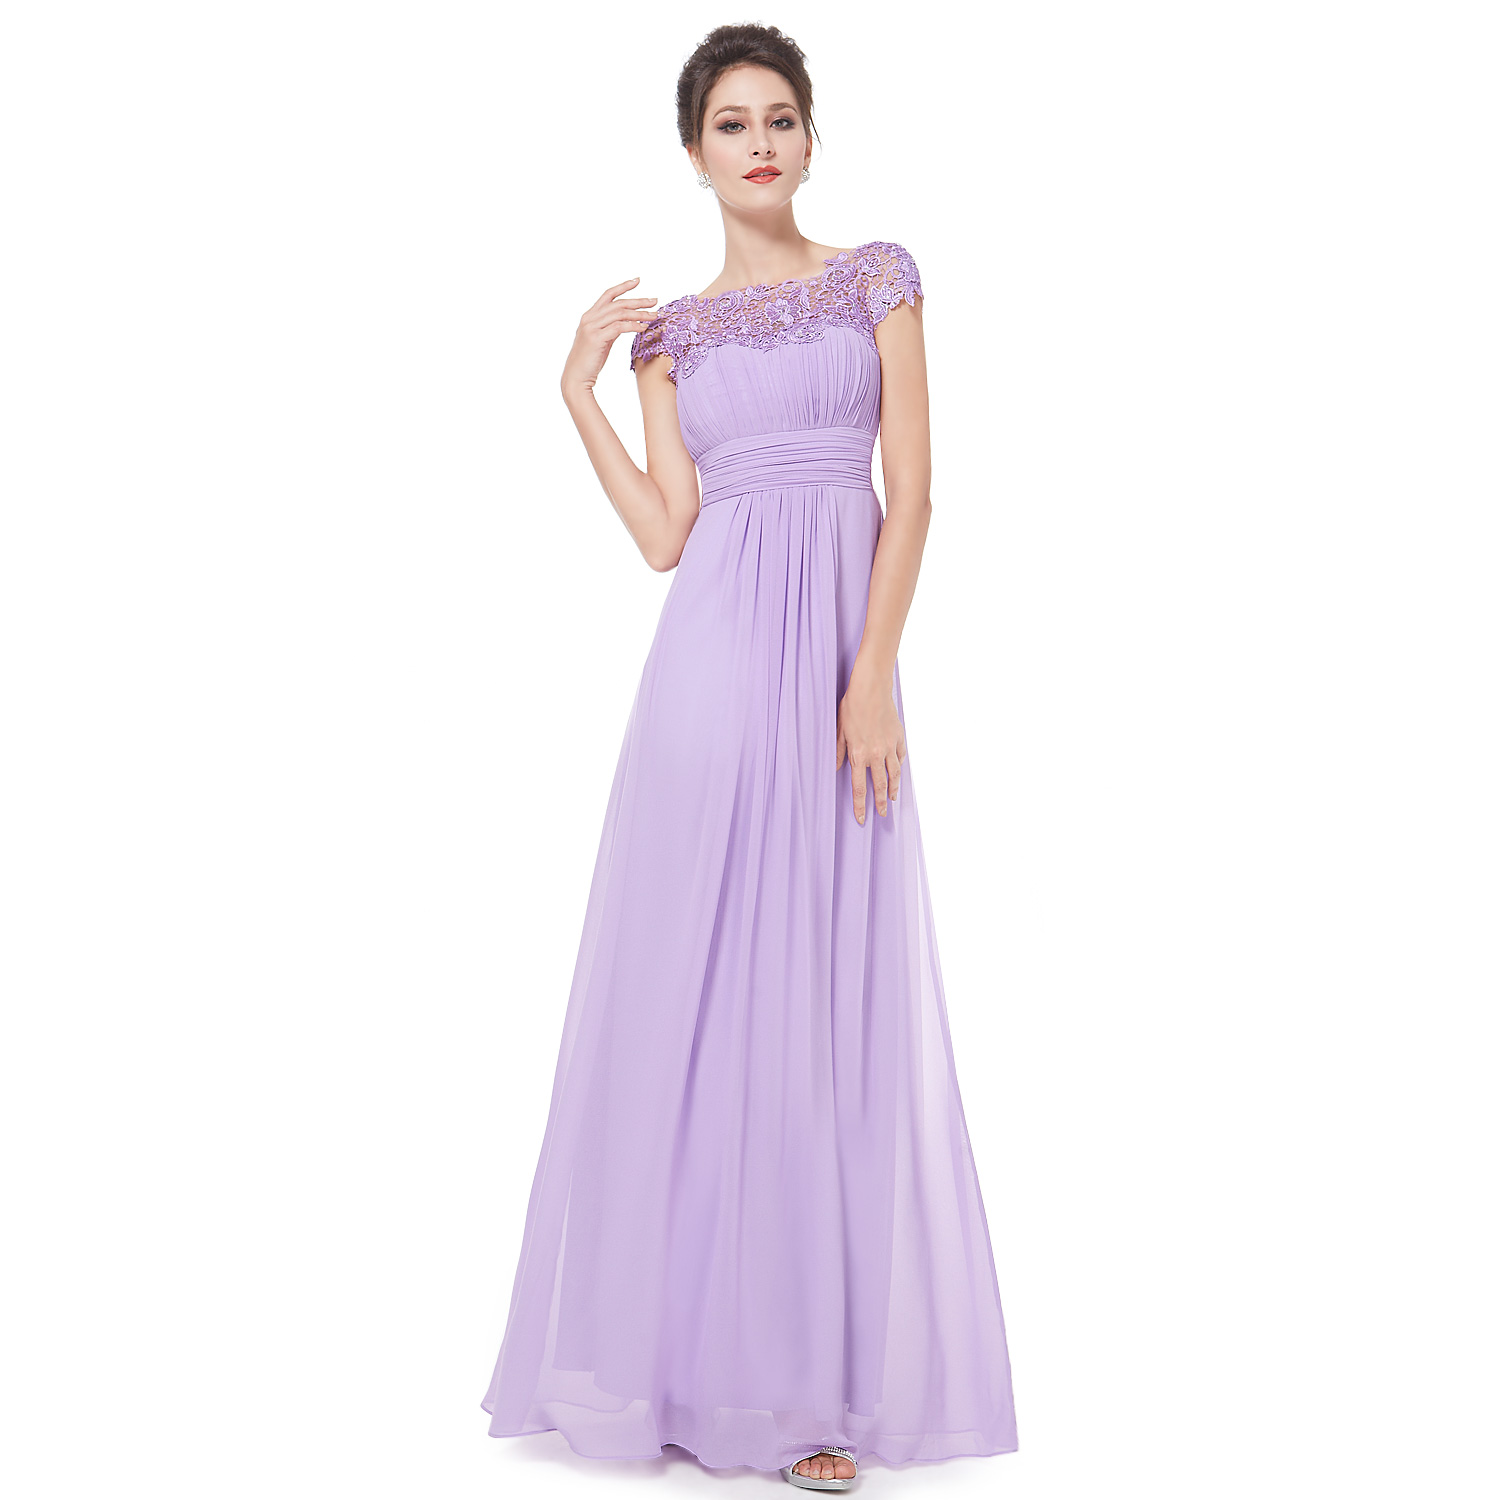 Maxi lace bridesmaid dresses chiffon homecoming formal for Lace maxi wedding dress